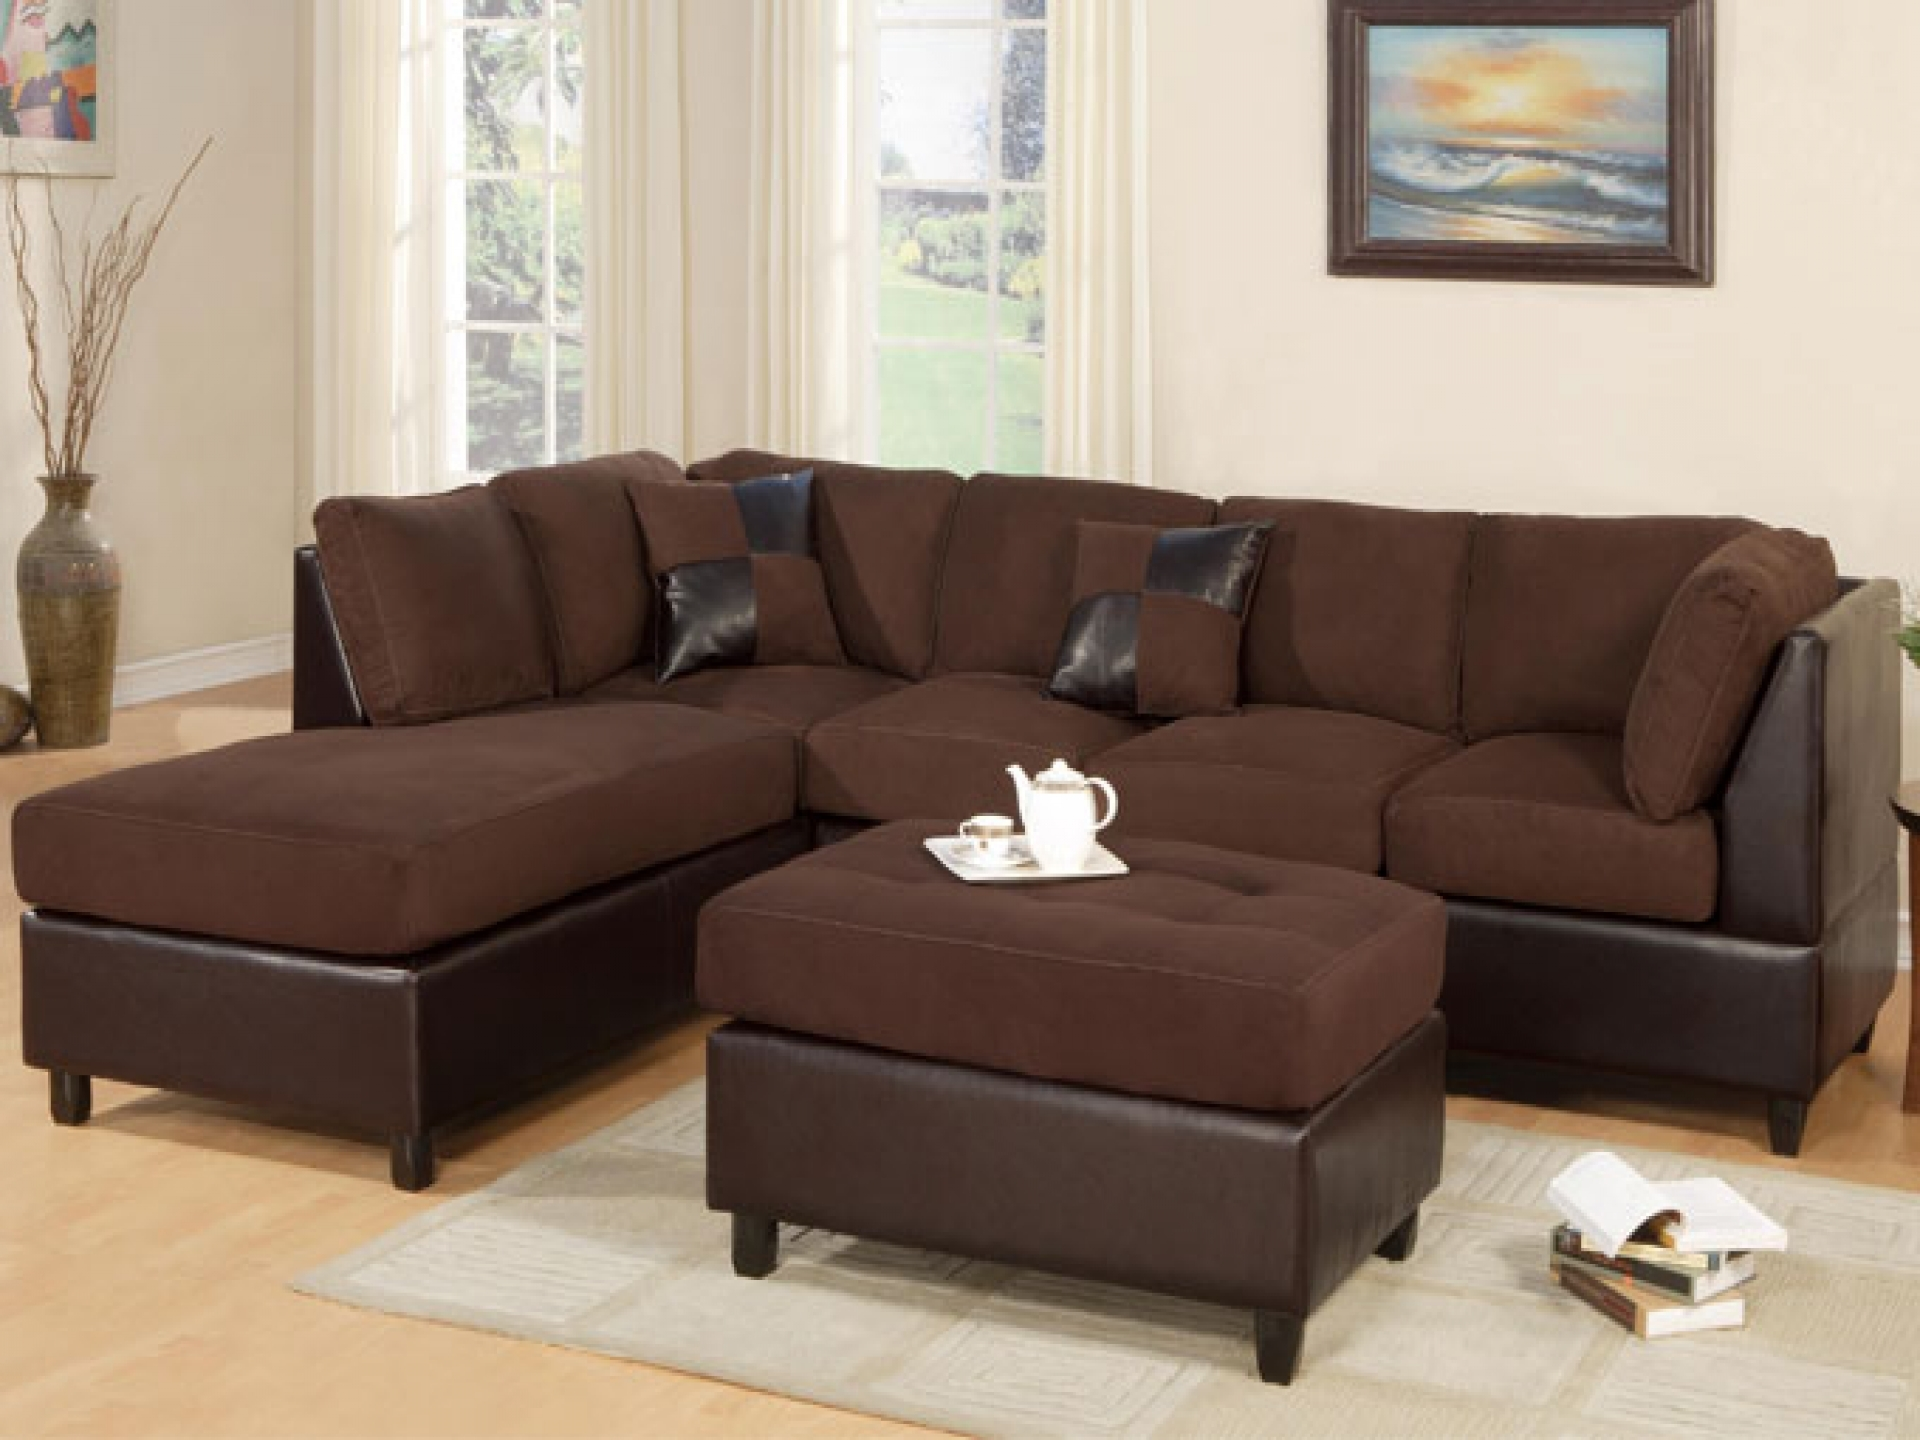 Sectional Sleeper Sofa With Chaise has one of the best kind of other is Sofa Sectionals Best Sofa Design - Book of Stefanie